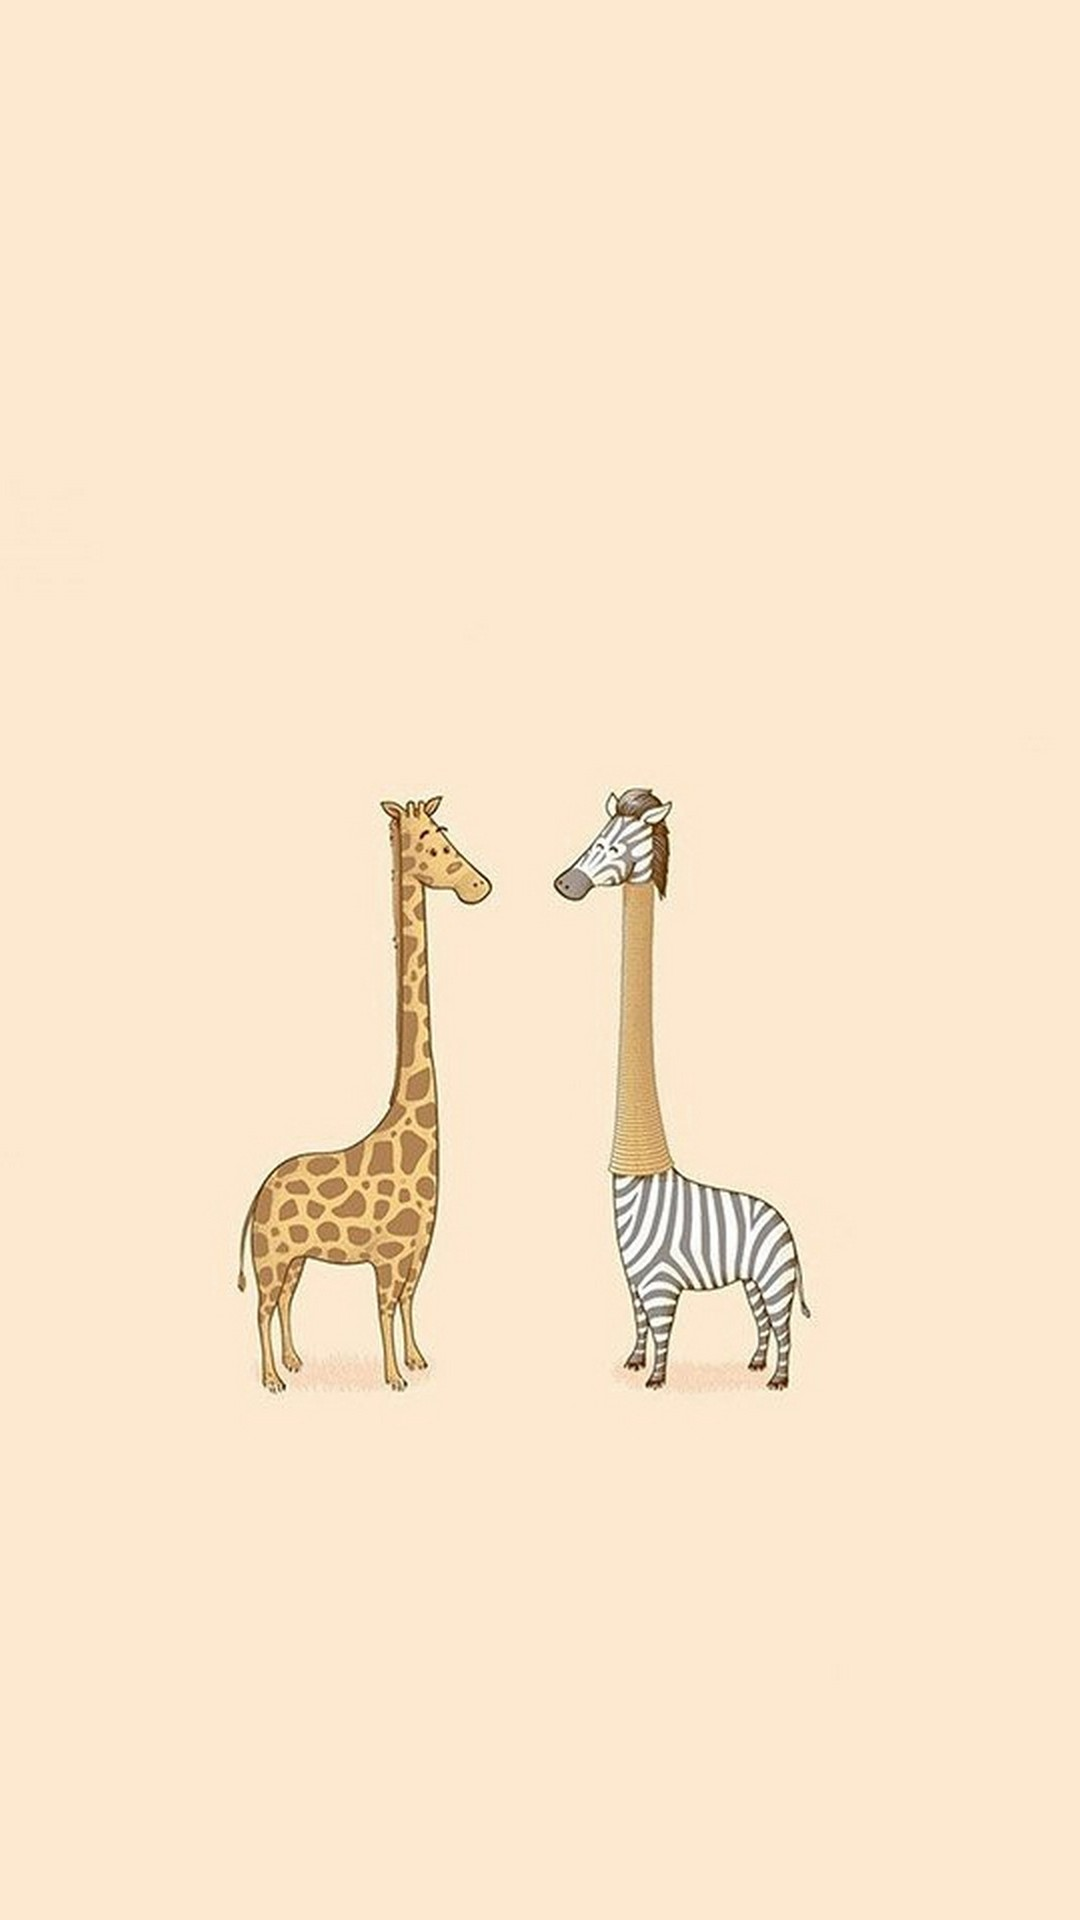 Cute Trendy Wallpapers Quotes Laptop Cute Giraffe Zebra Wallpaper Iphone 2019 3d Iphone Wallpaper